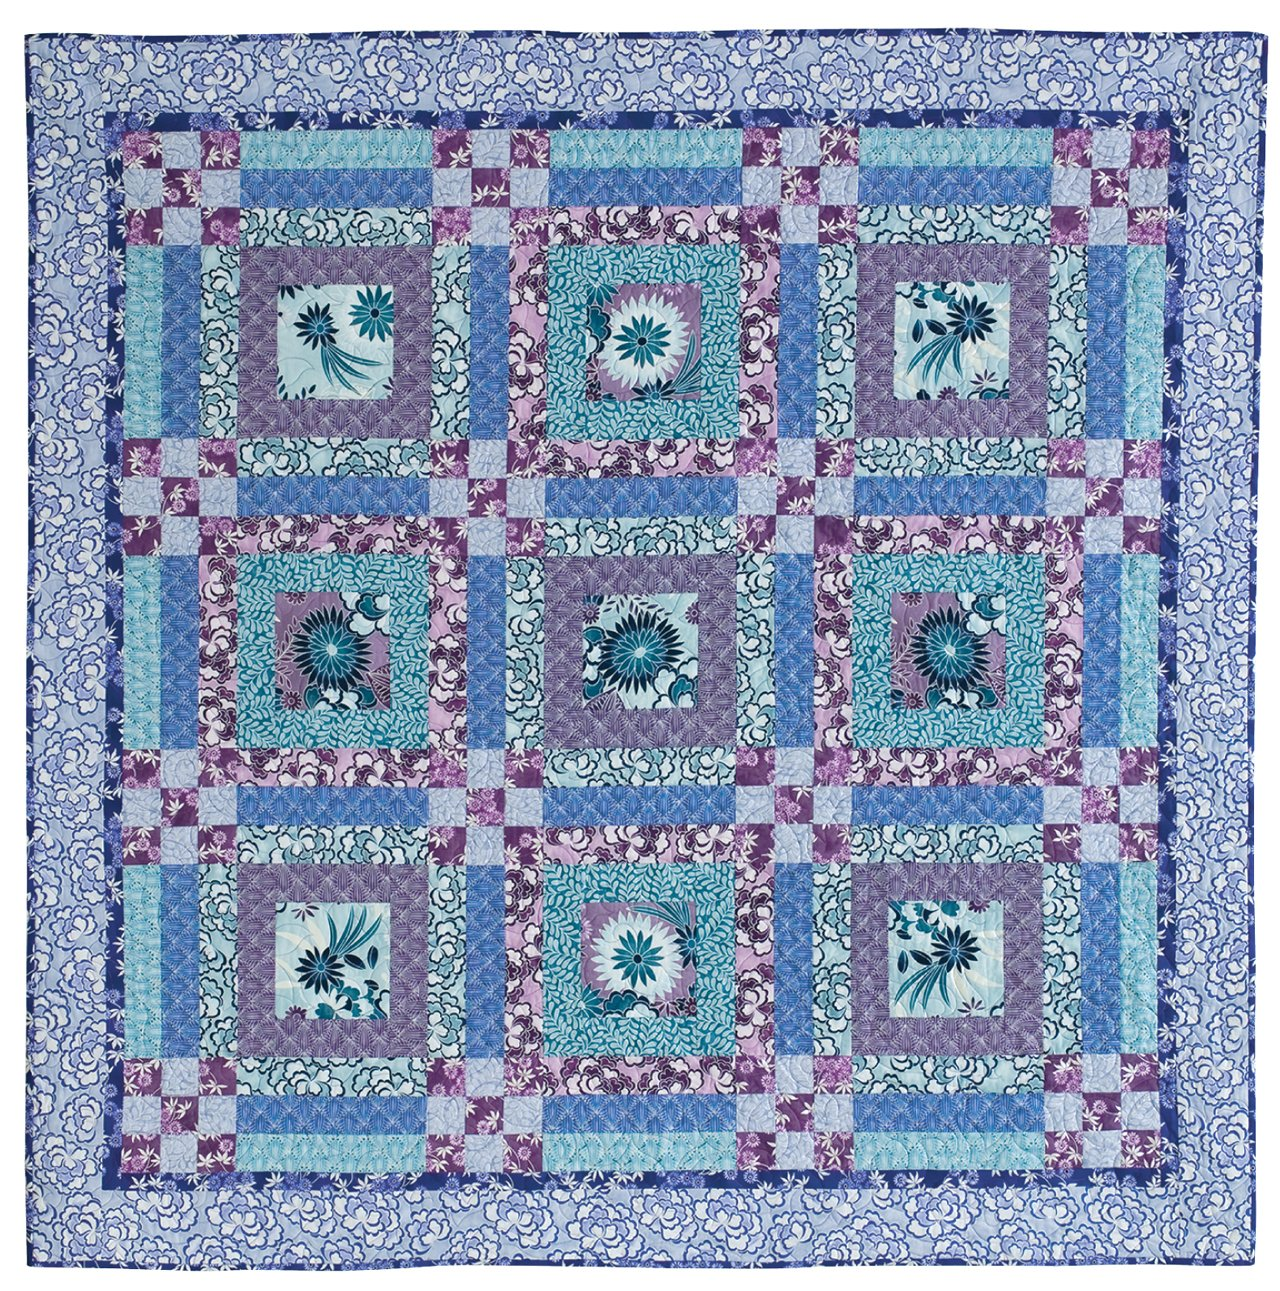 Easy Quilts for Beginners and Beyond: 14 Quilt Patterns from Quiltmaker Magazine by That Patchwork Place (Image #13)